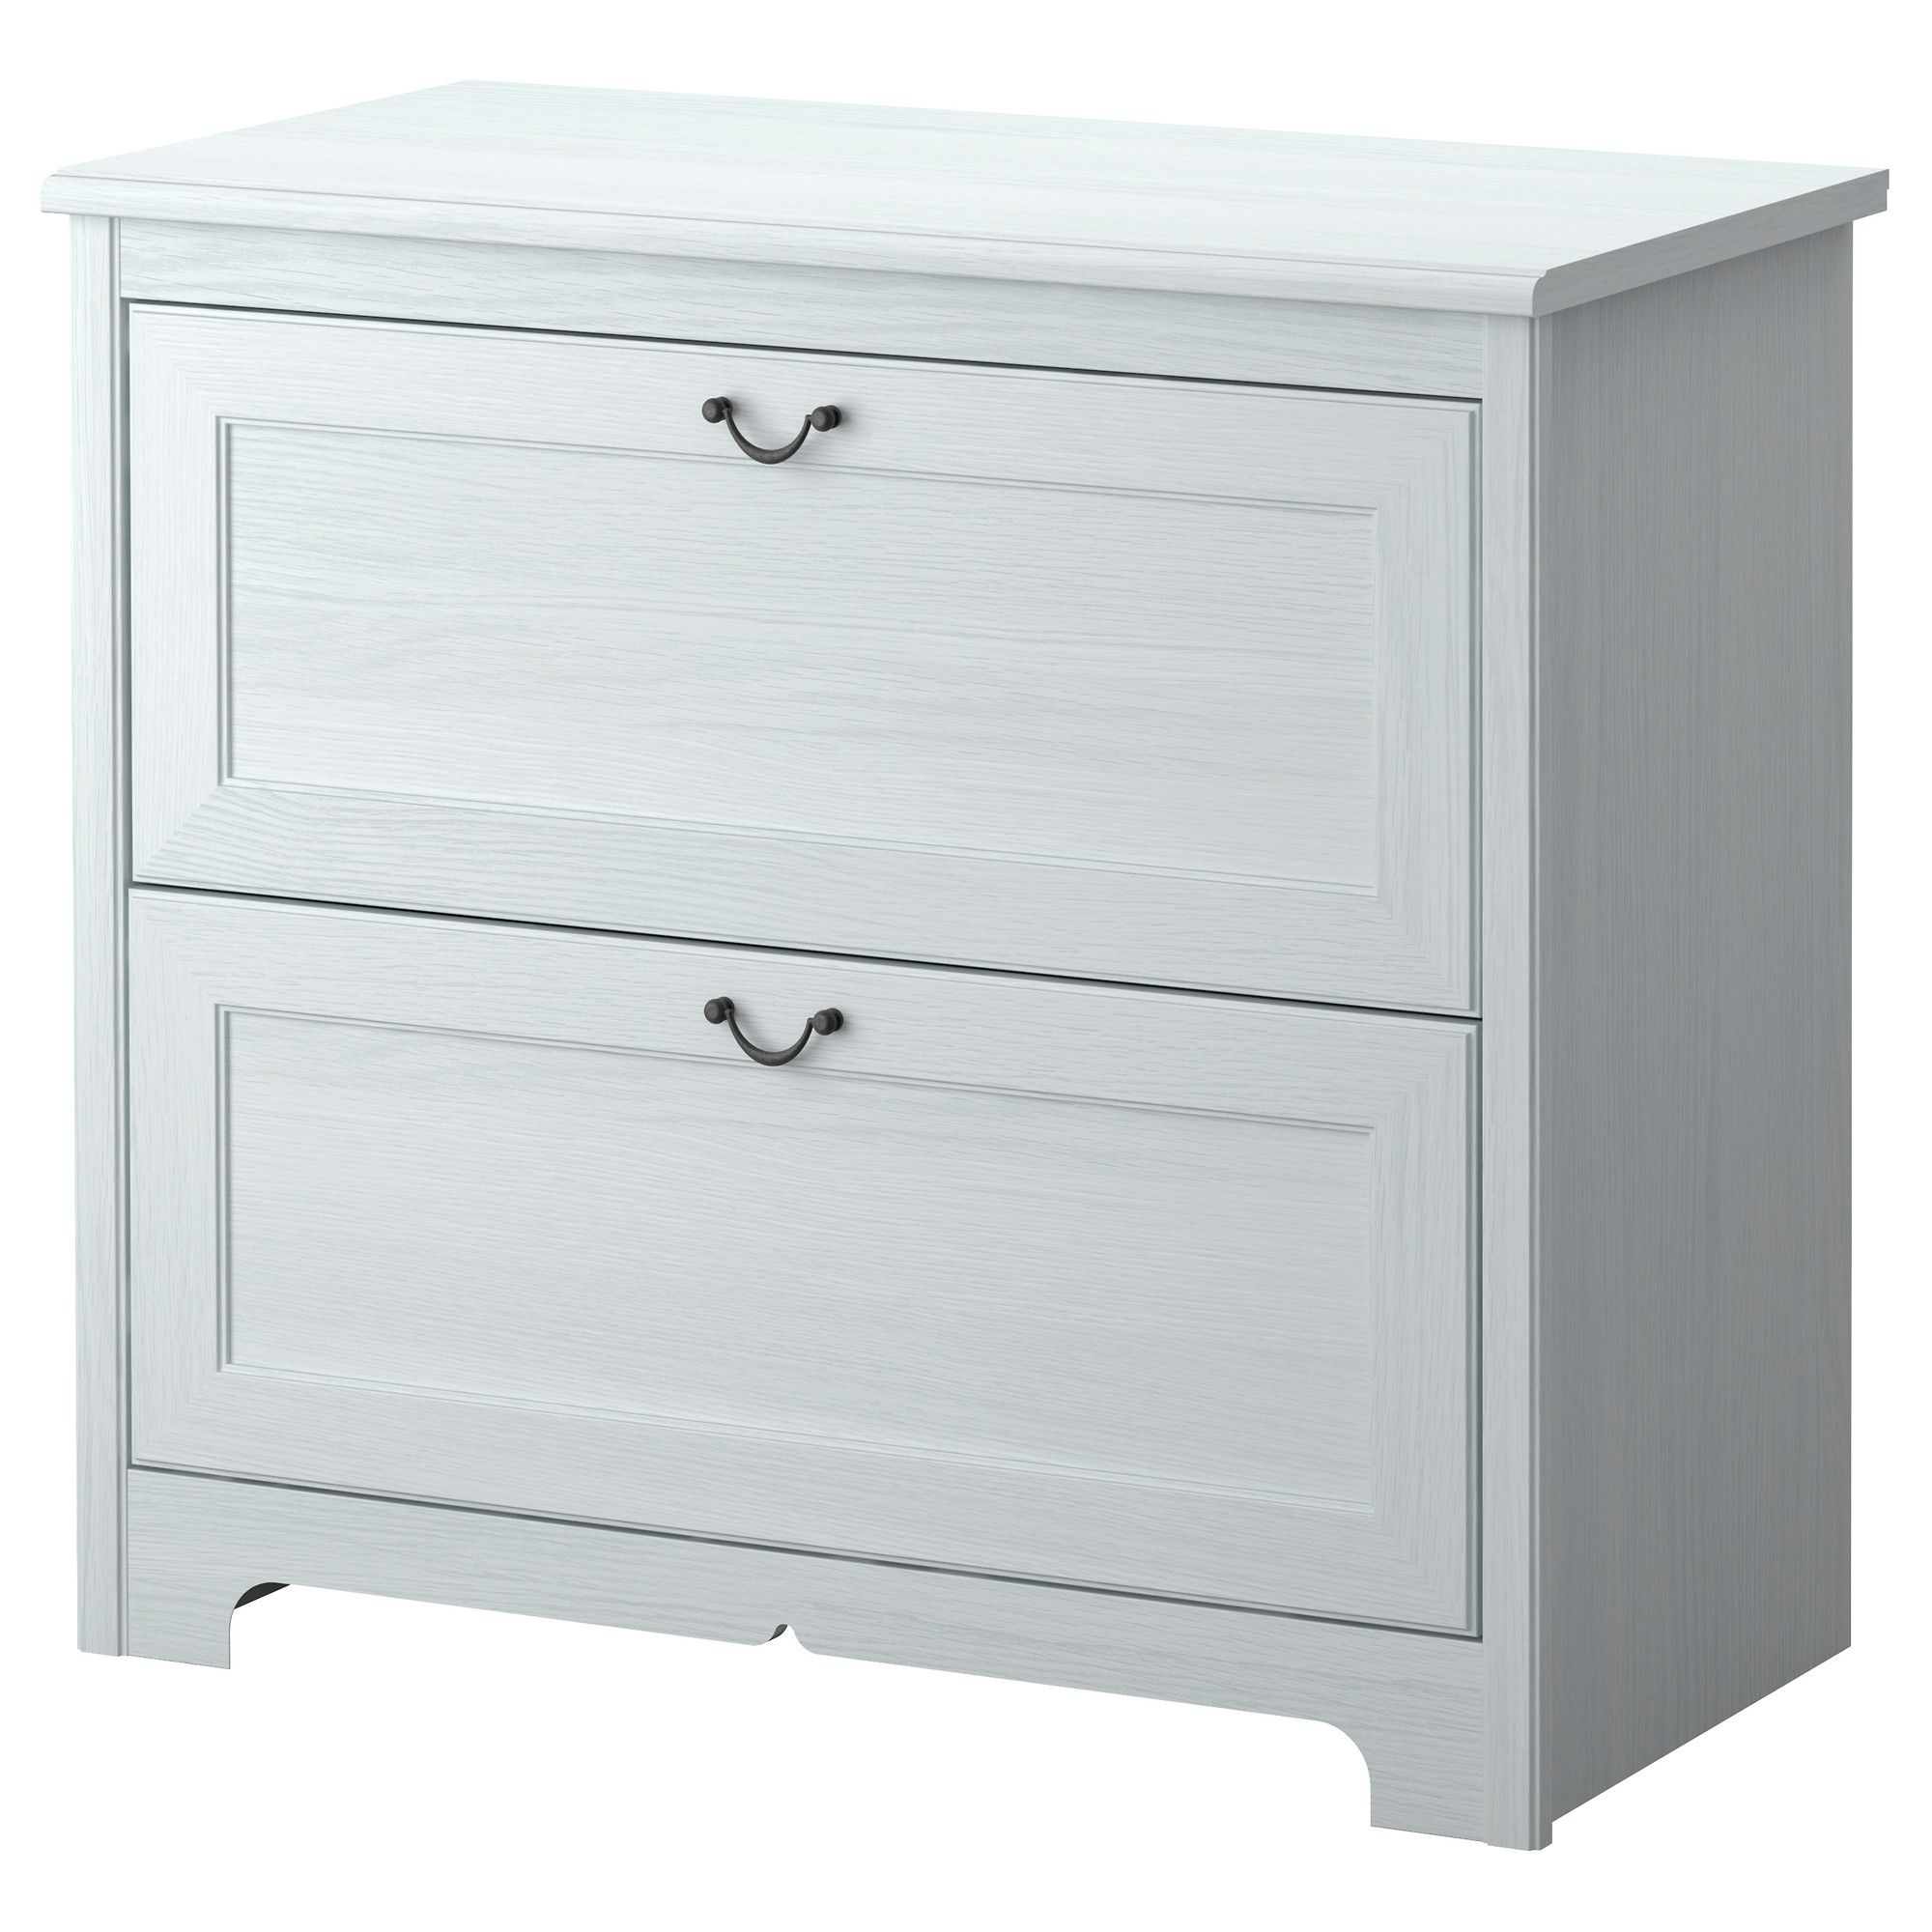 ASPELUND Chest with 2 drawers   IKEA   79 99  34 25  w x 17 25  d x. ASPELUND Chest with 2 drawers   IKEA   79 99  34 25  w x 17 25